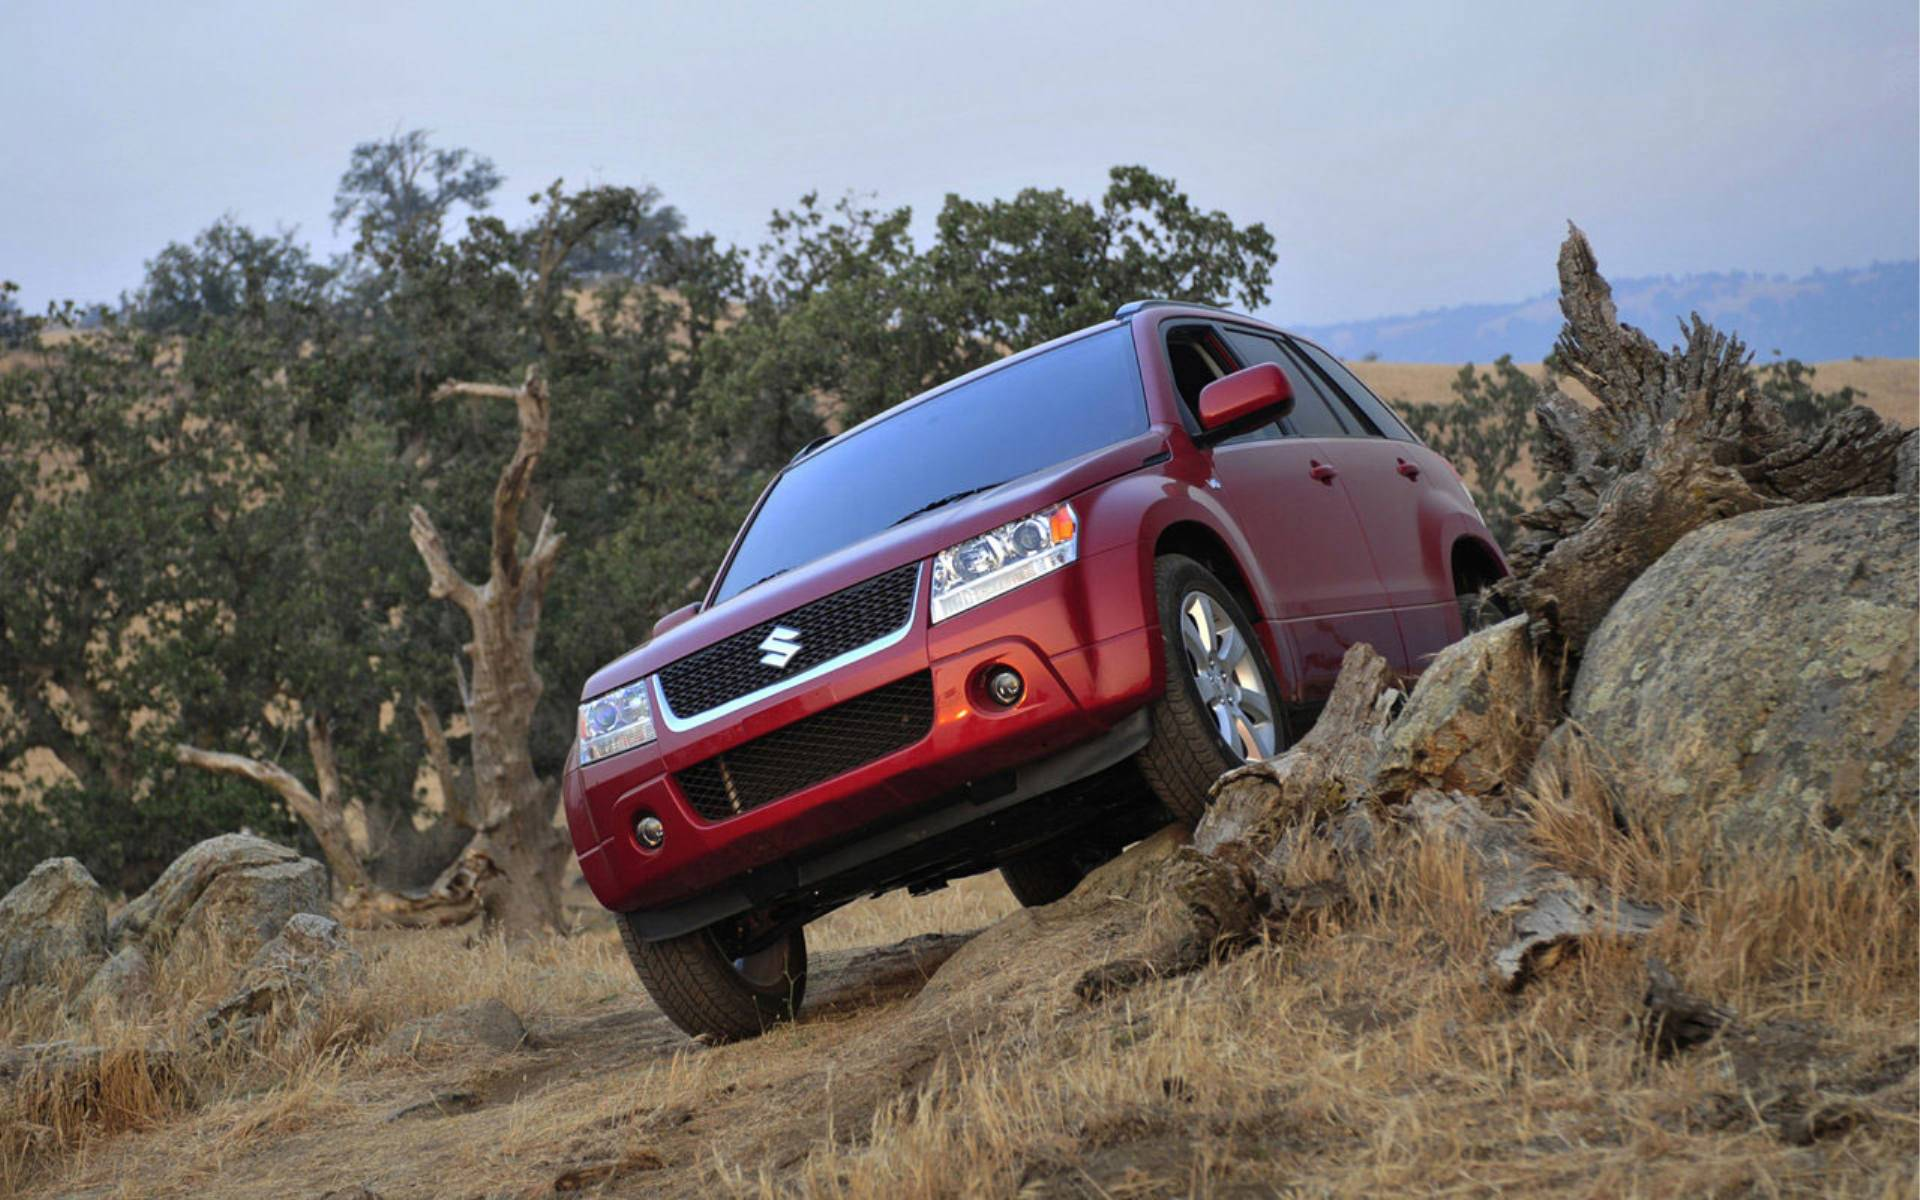 Suzuki Grand Vitara Off Road Widescreen HD Wallpaper 4 title=